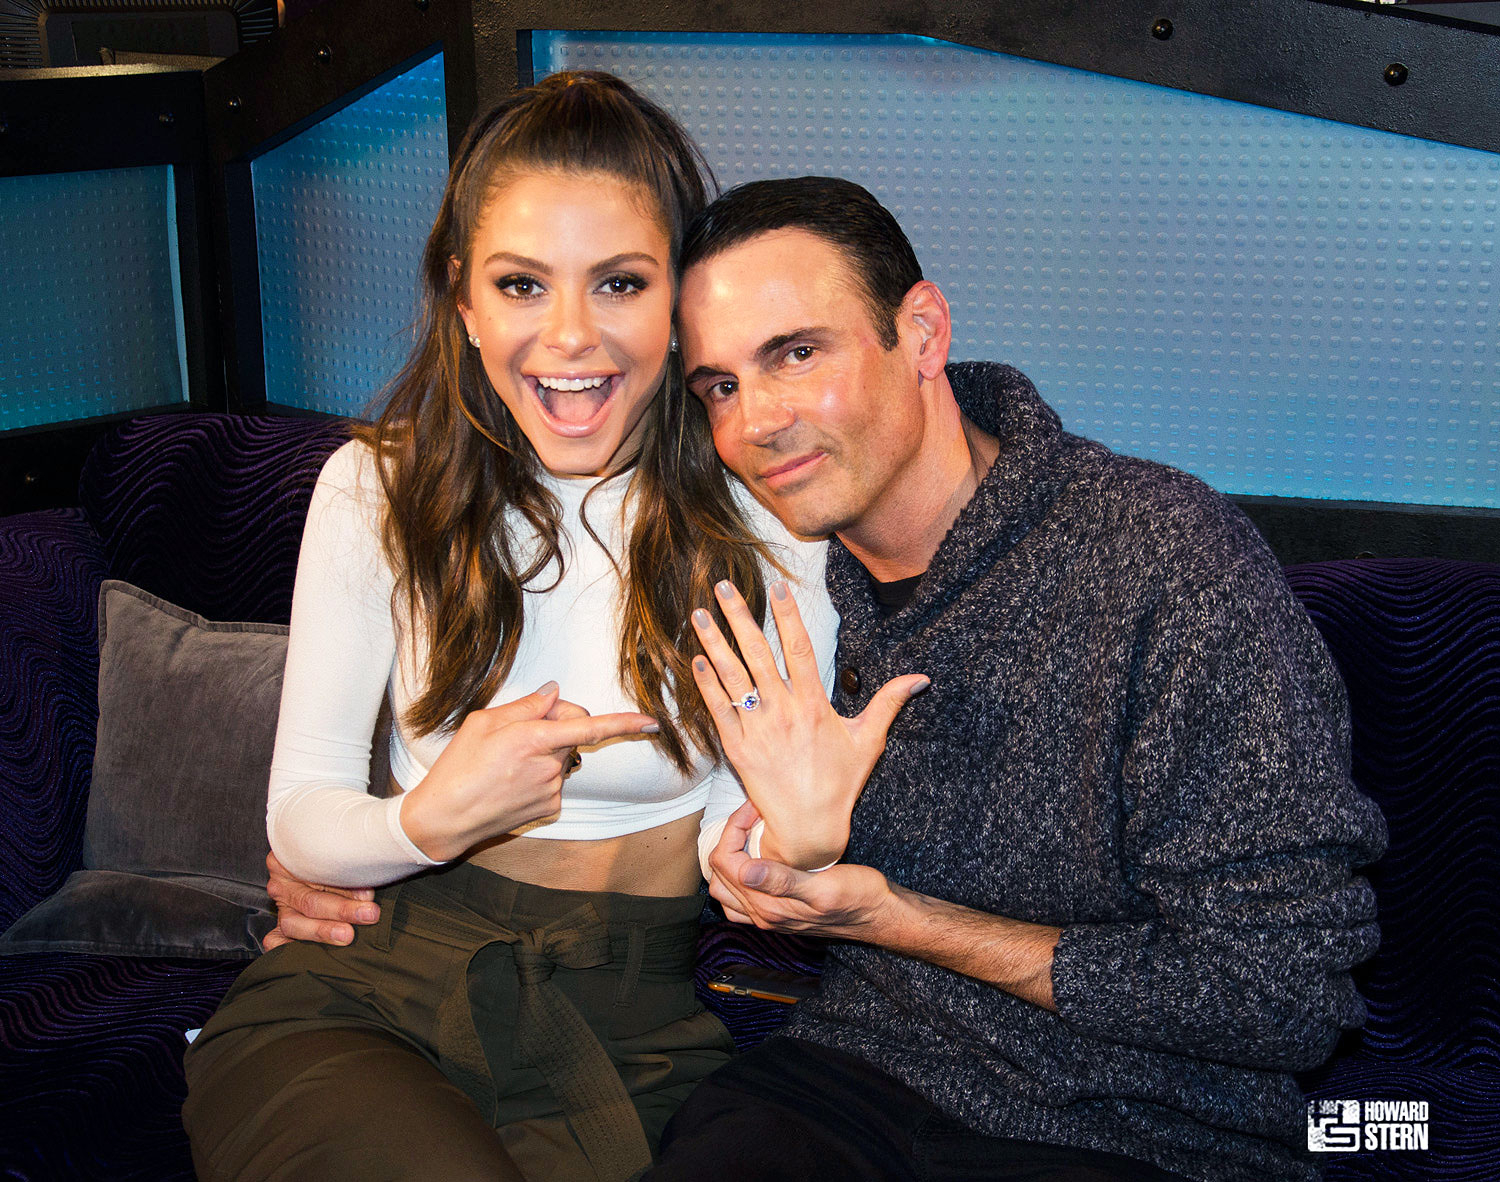 Maria Menounos reveals how her televised New Year's Eve wedding came together